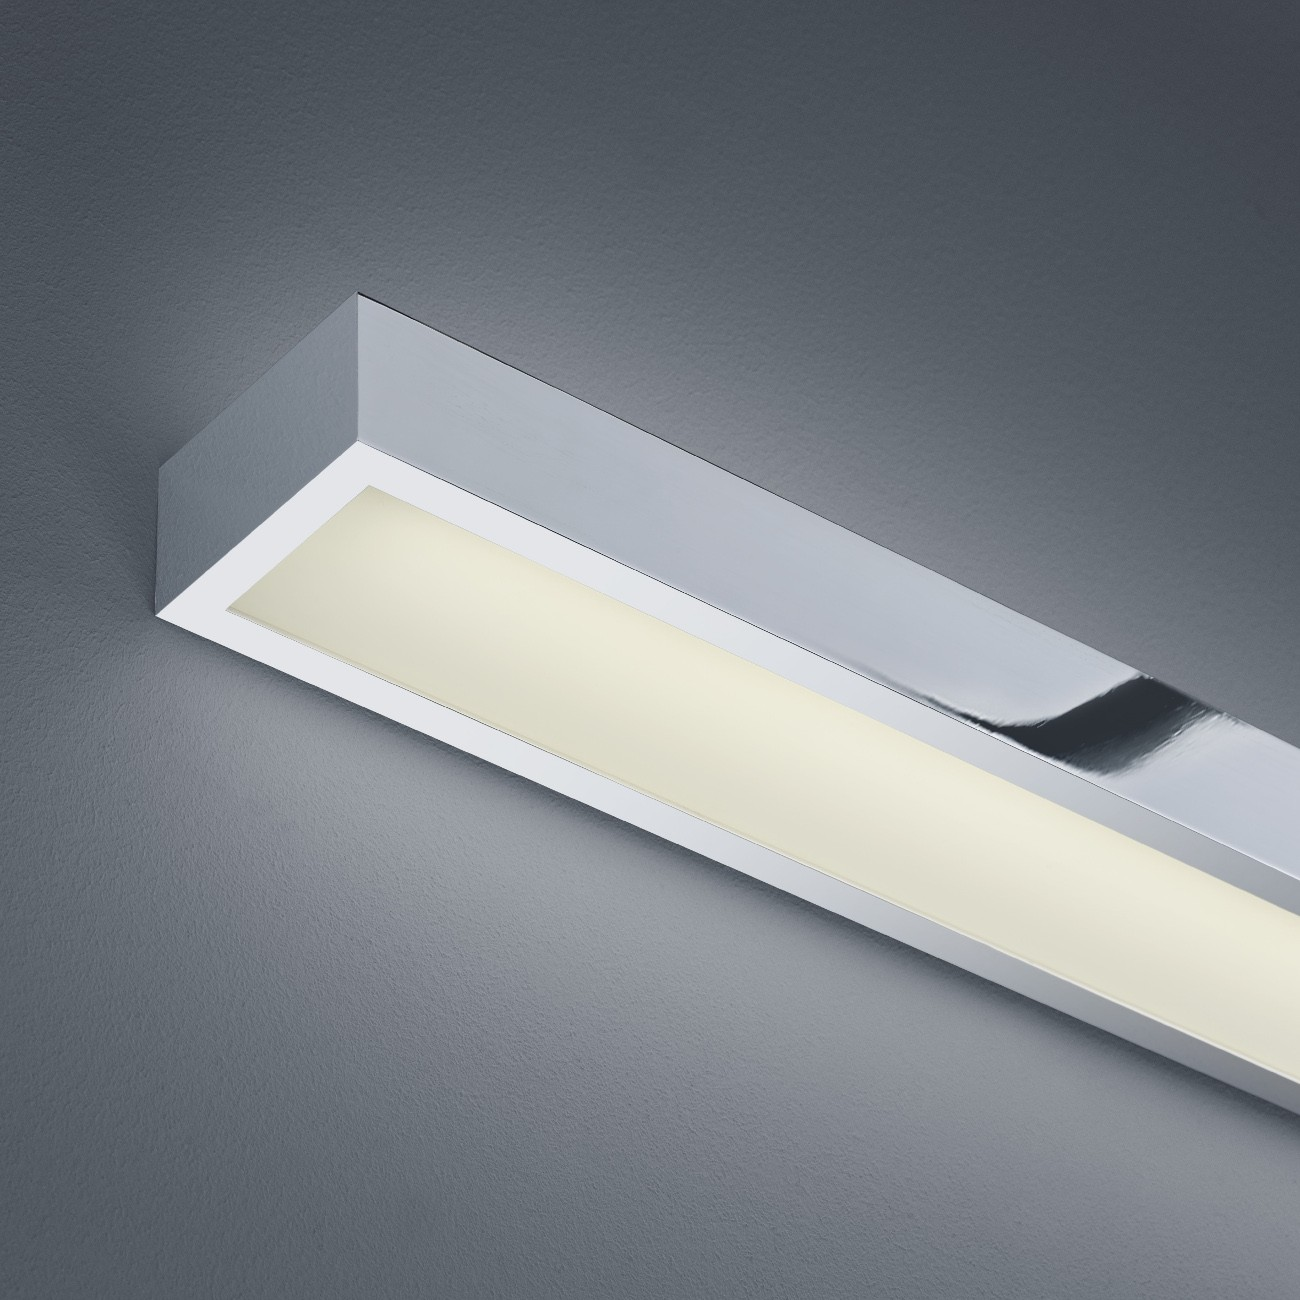 LED-Spiegelleuchte IP44 THEIA 600 Chrom